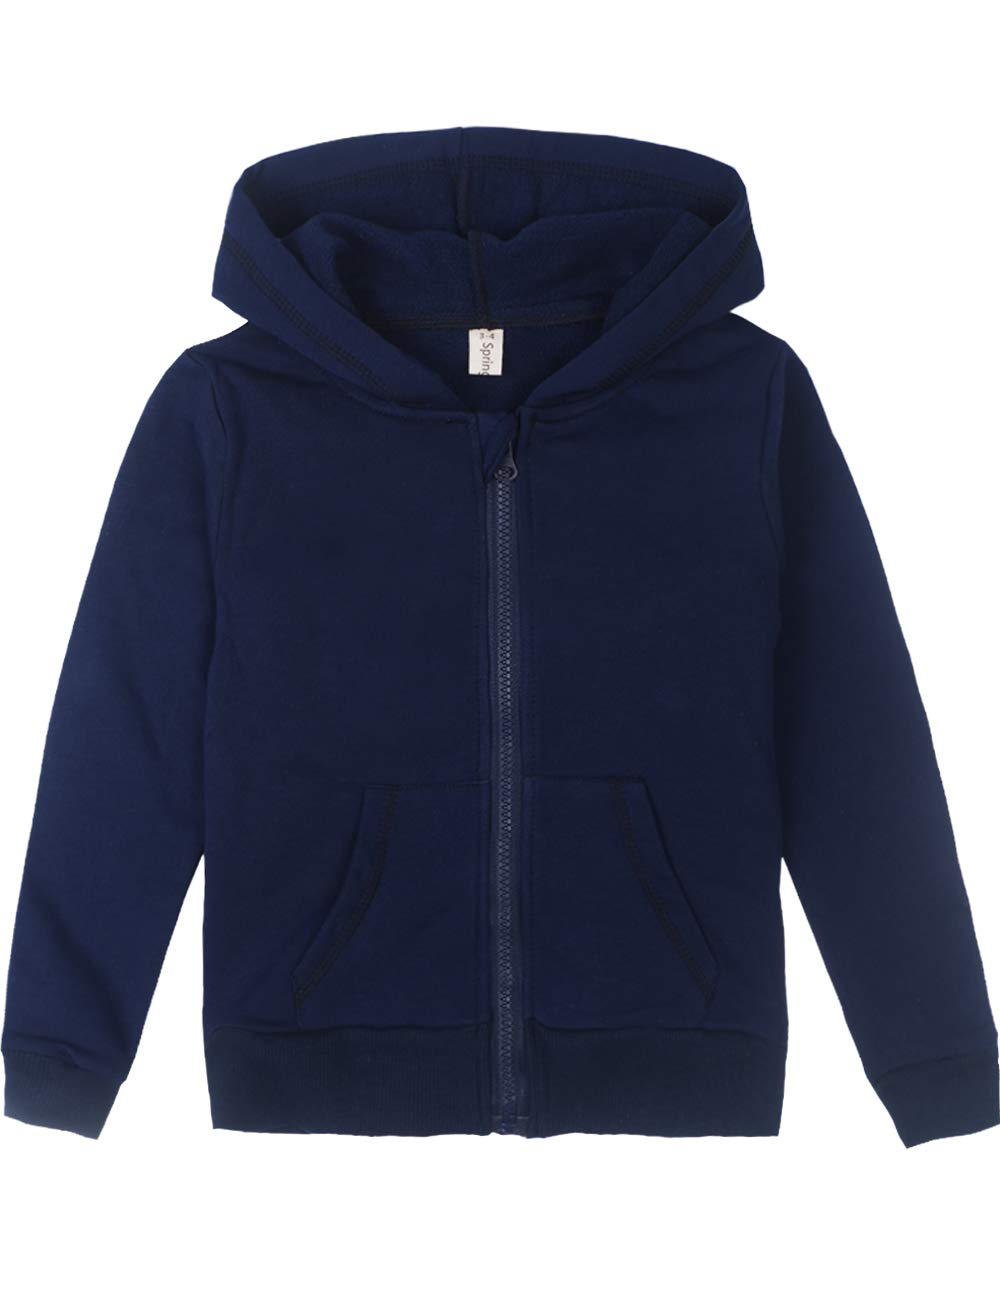 Spring&Gege Youth Solid Full Zipper Hoodies Soft Kids Hooded Sweatshirt for Boys and Girls Size 9-10 Years Navy Blue